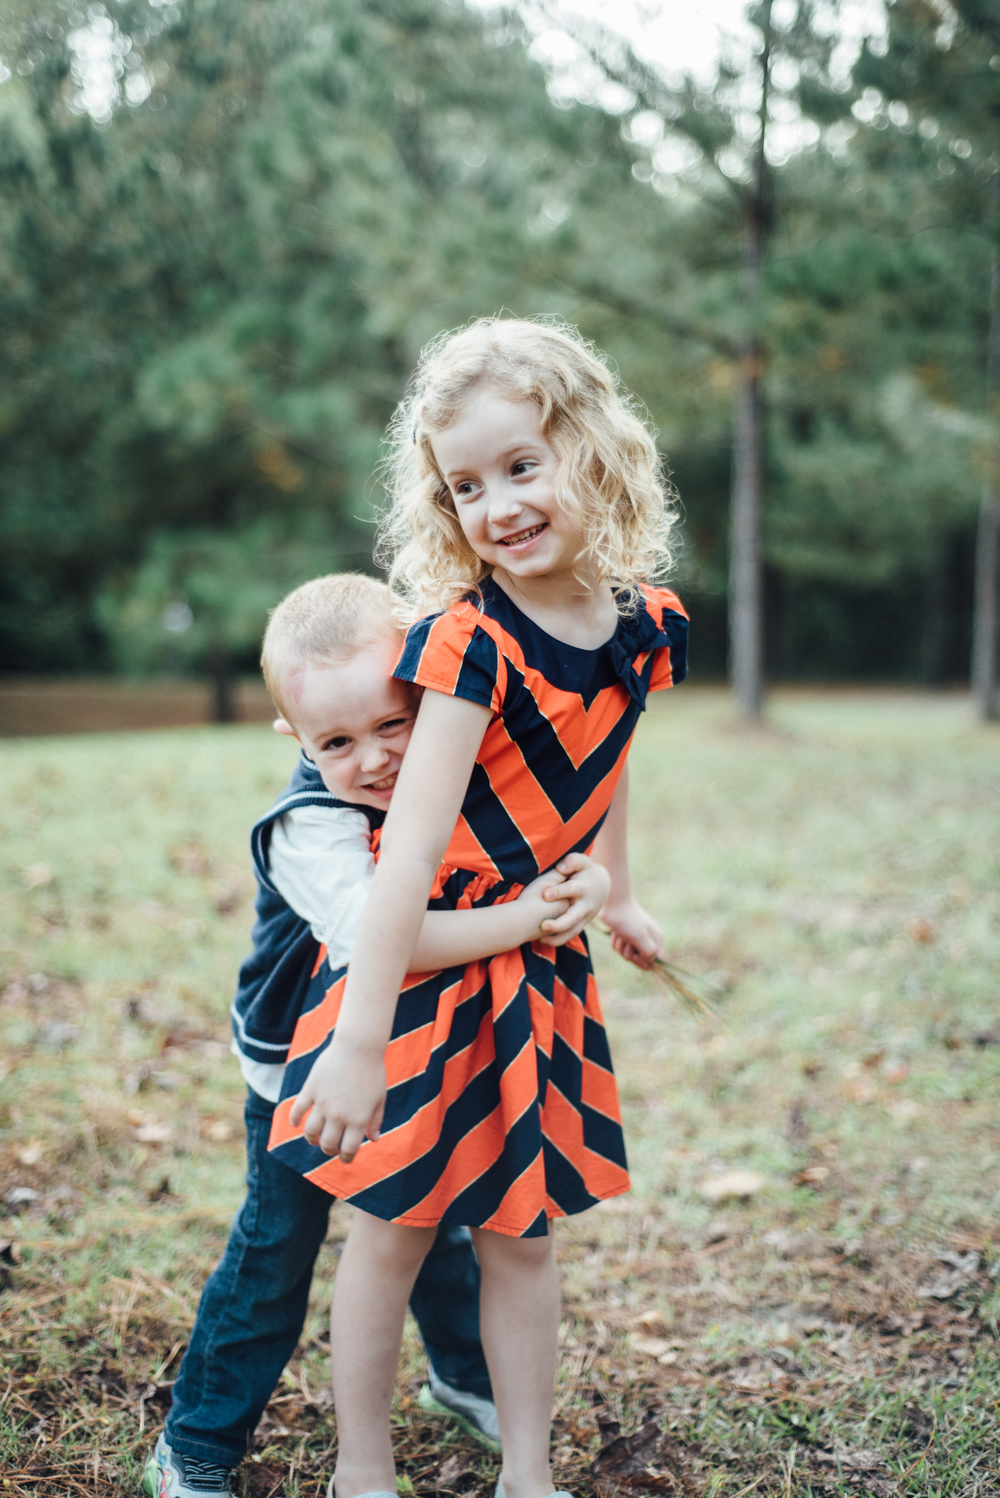 lindsey ann photography, alabama photography, family portraits, family photography, birmingham photography